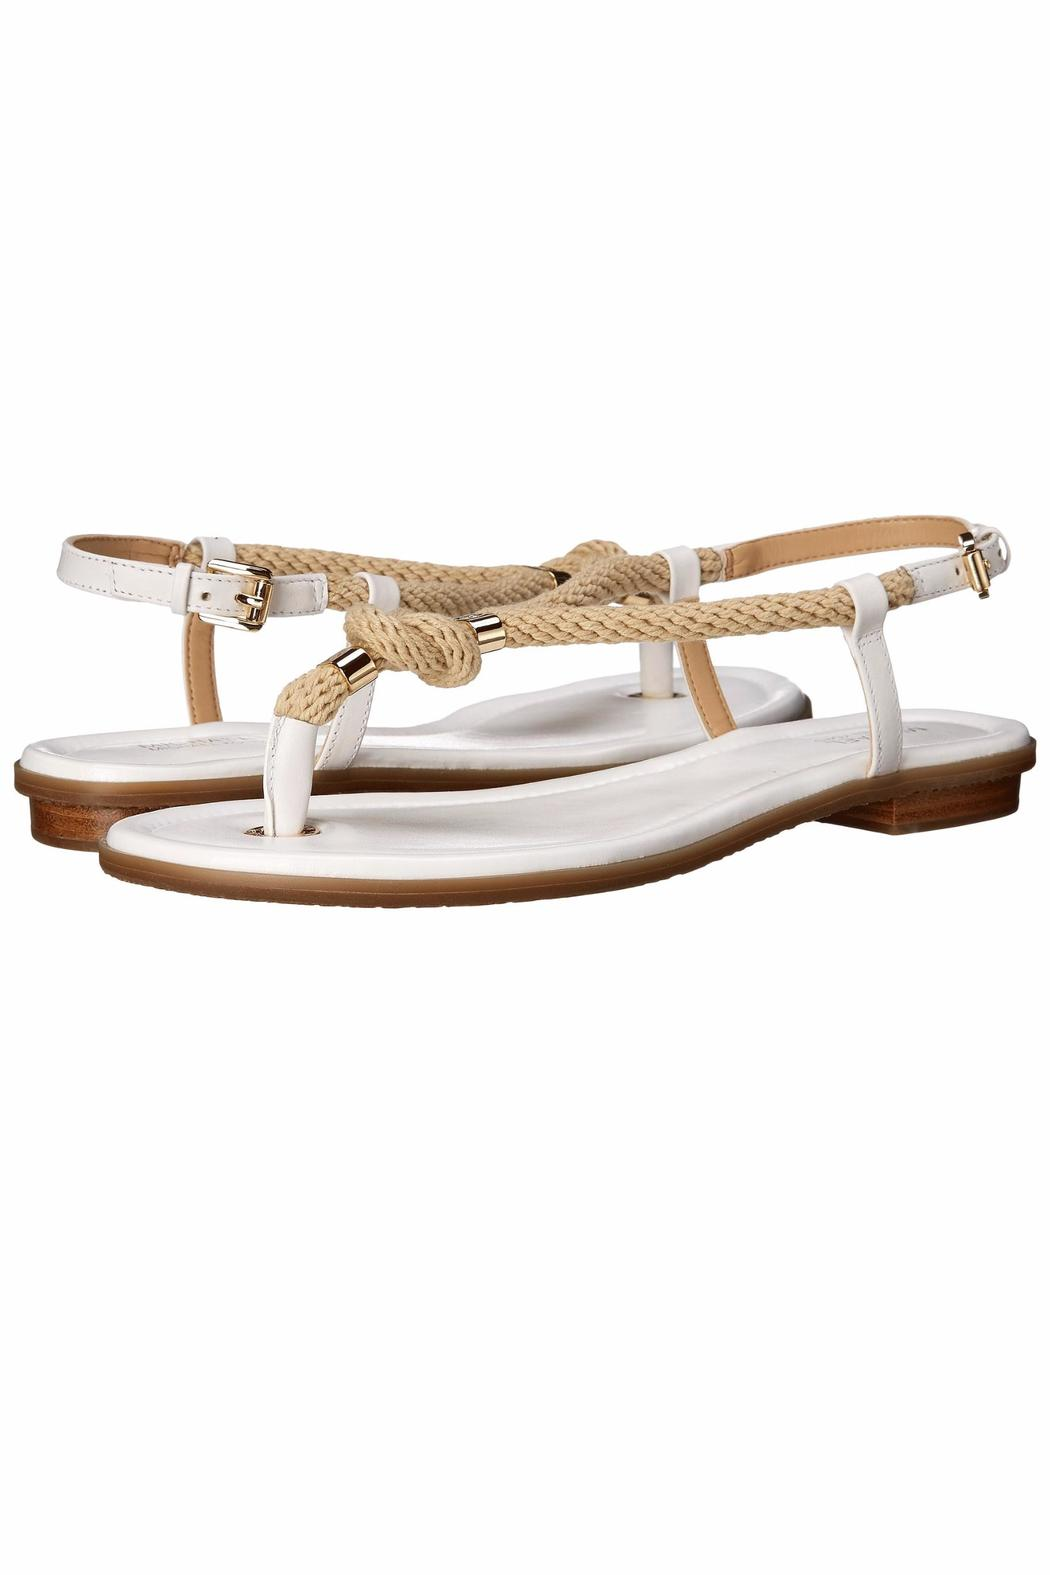 85c955e30cc2 Michael Kors Holly Rope-Trim Sandal from Edmonton by Modern Sole ...